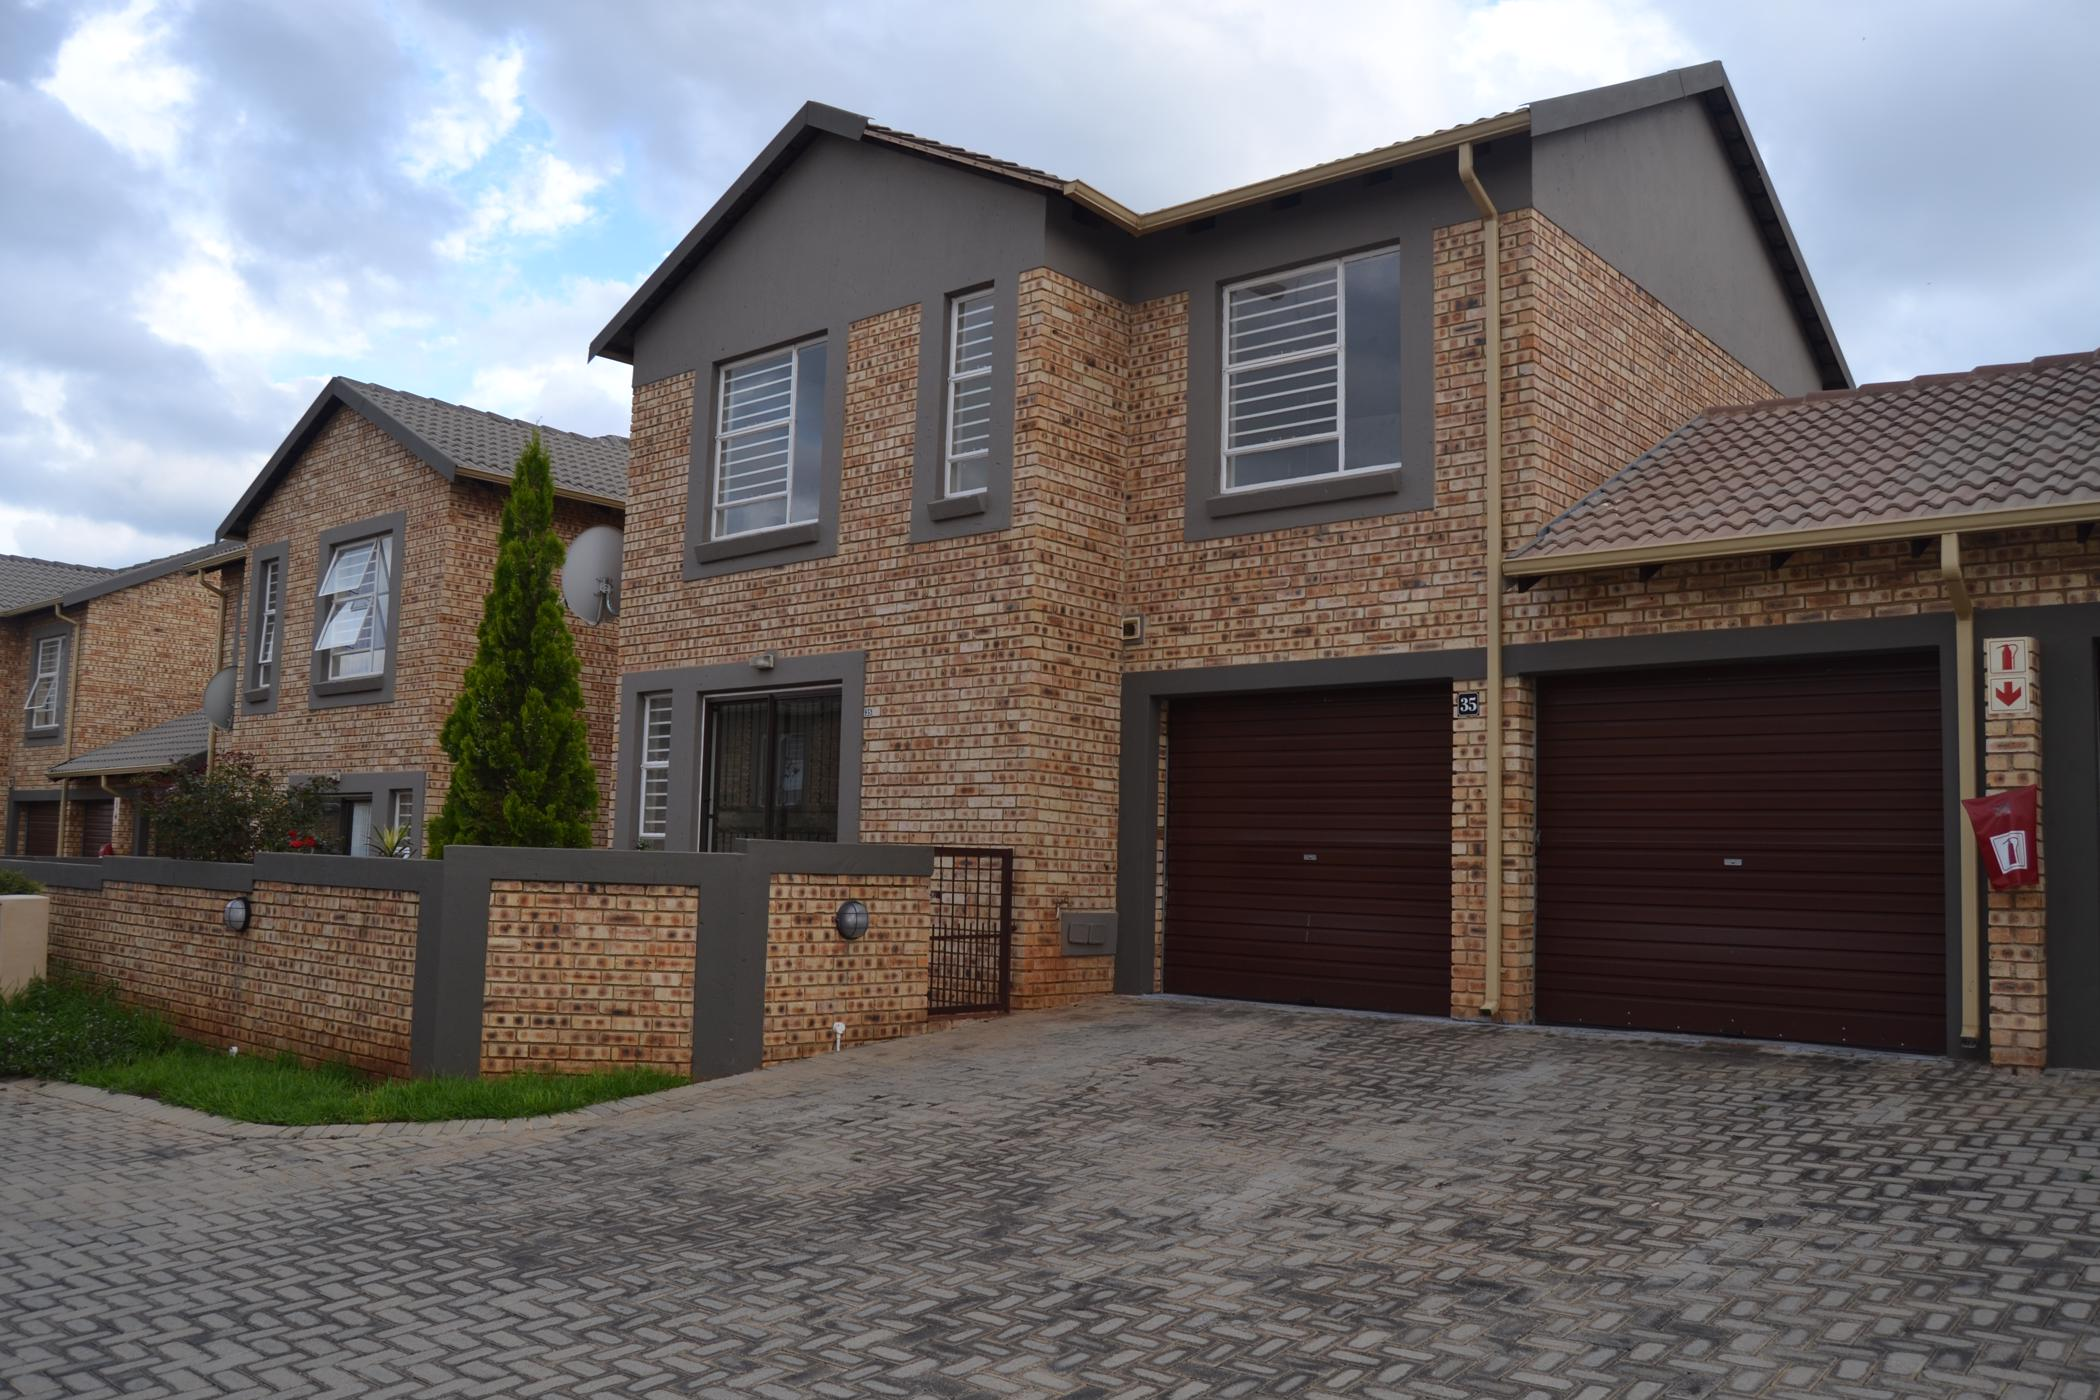 https://listing.pamgolding.co.za/images/properties/201901/1252923/H/1252923_H_17.jpg